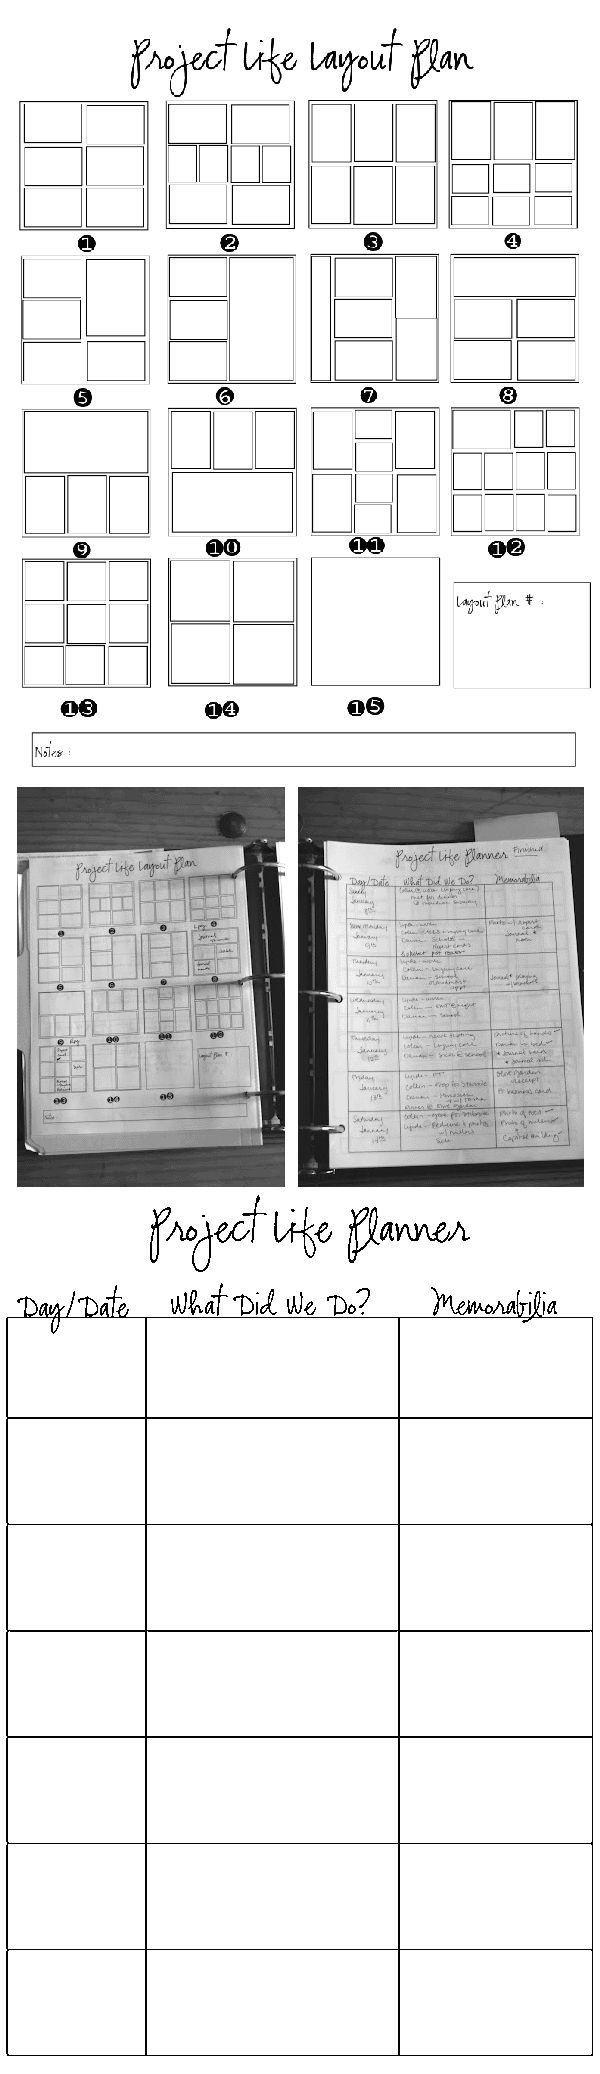 project life planner sheets: free printables from Elle C Use as layout aids for sketchbook planning/templates